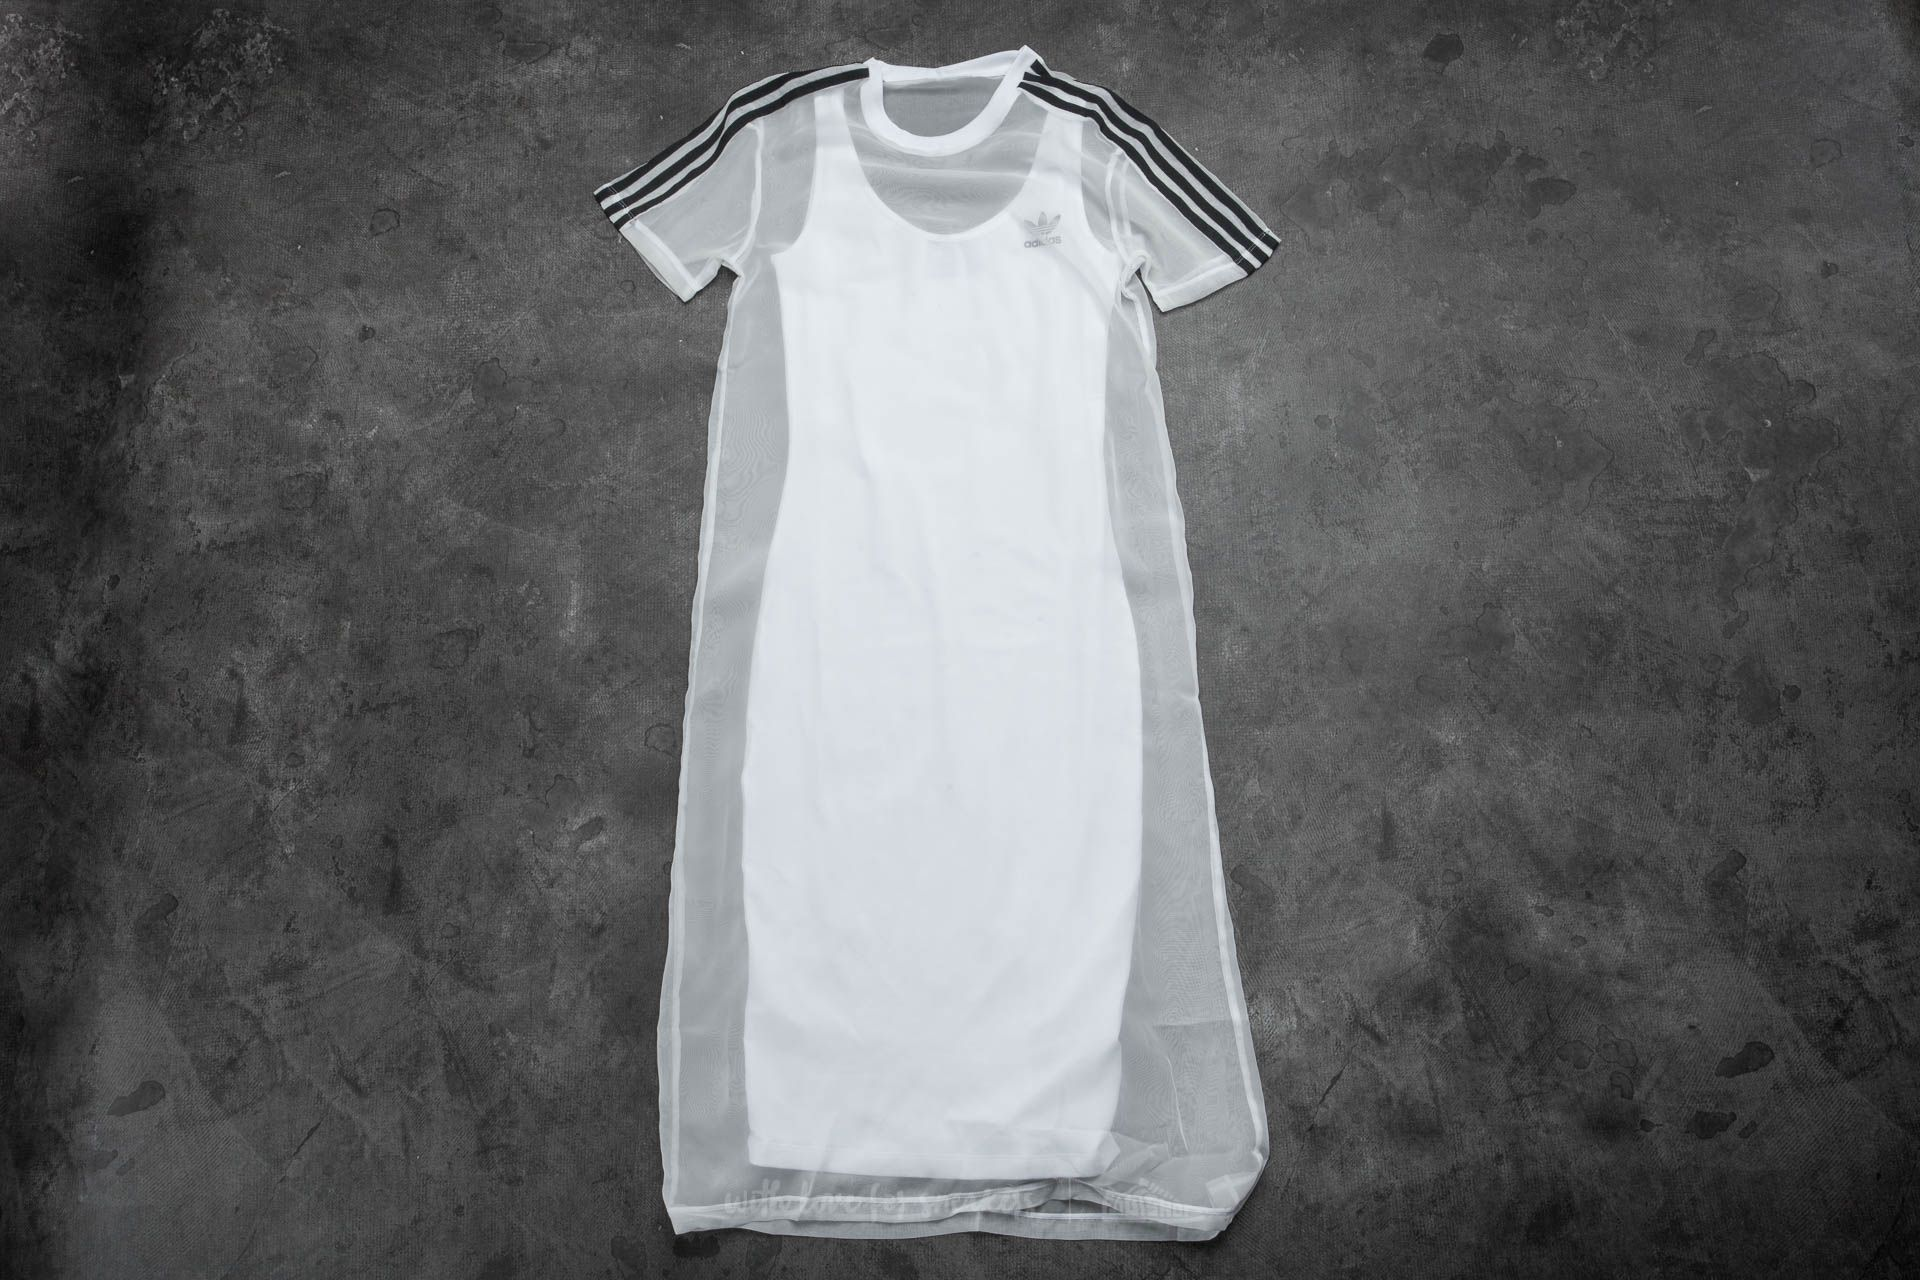 adidas 3 Stripes Layer Dress White - 12767